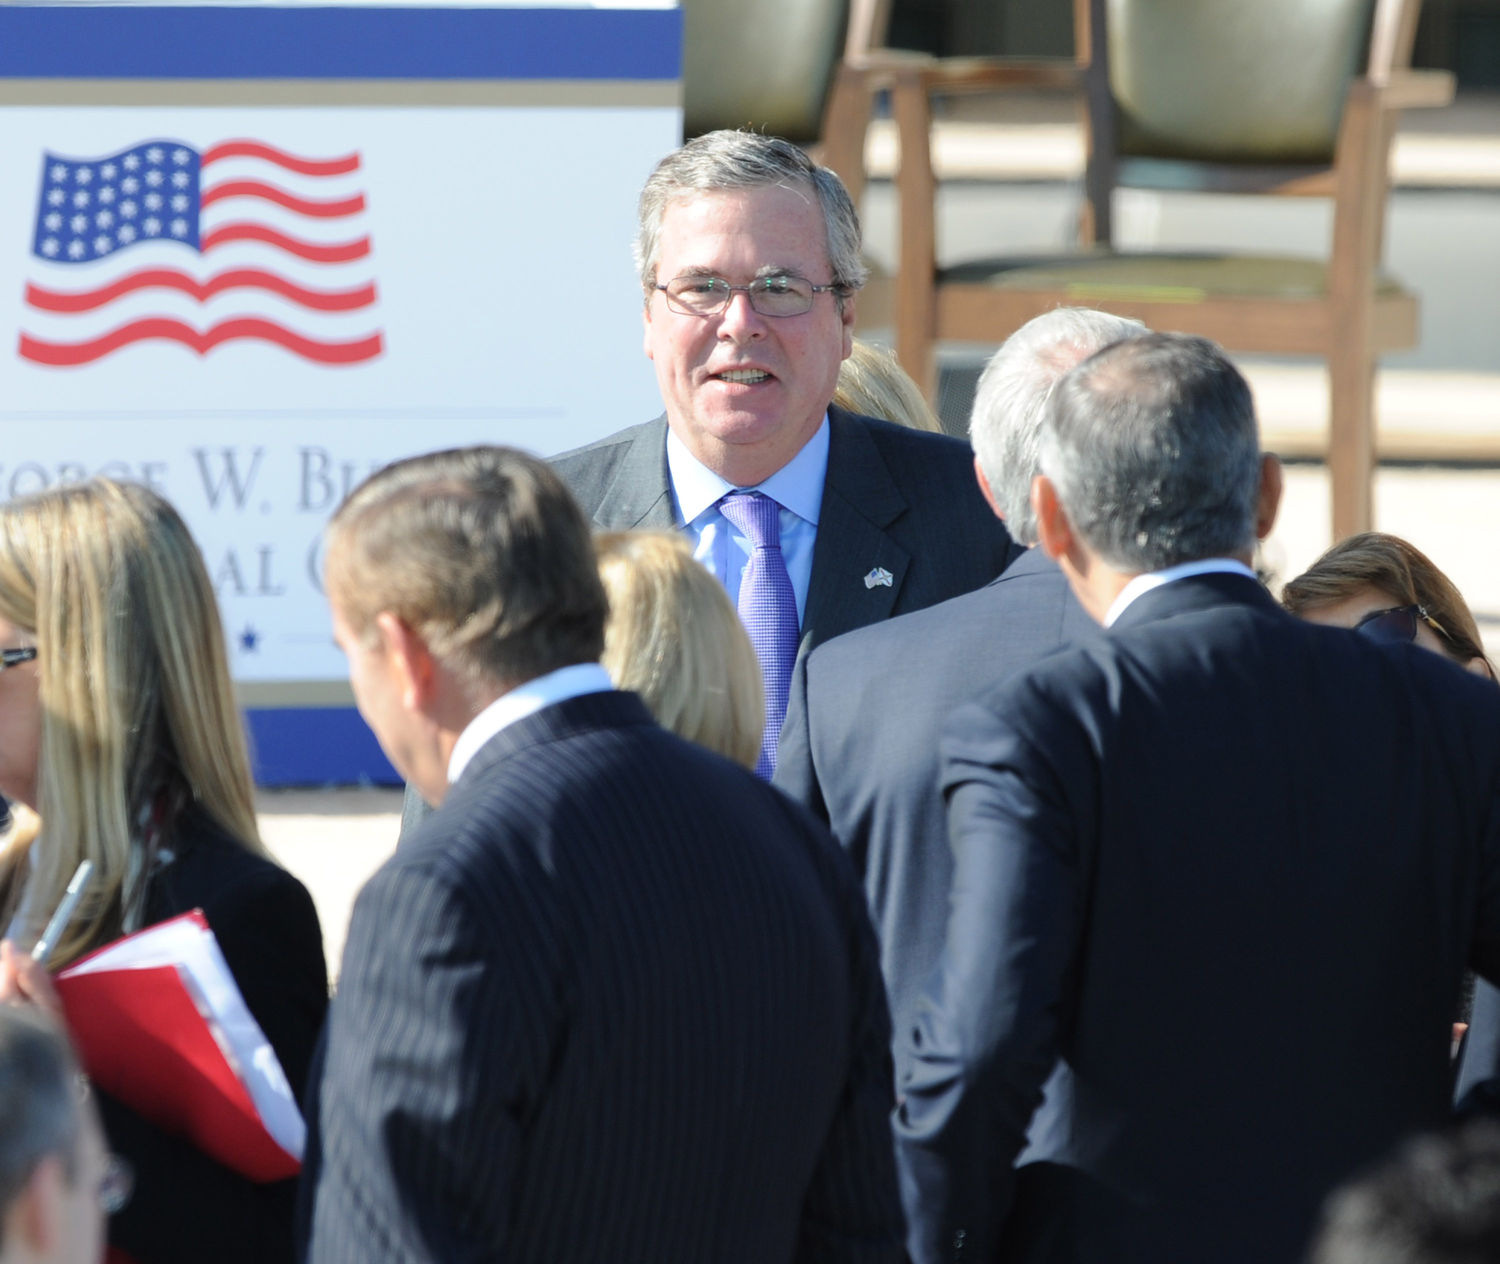 Jeb Bush makes his way to the dedication of the George W. Bush Presidential Library in Dallas on April 25, 2013. The museum, located on the campus of SMU in Dallas, features a permanent exhibit that uses artifacts, documents, photographs, and videos from the Library's extensive collection to capture the key decisions and events of the Presidency of George W. Bush. UPI/Ian Halperin